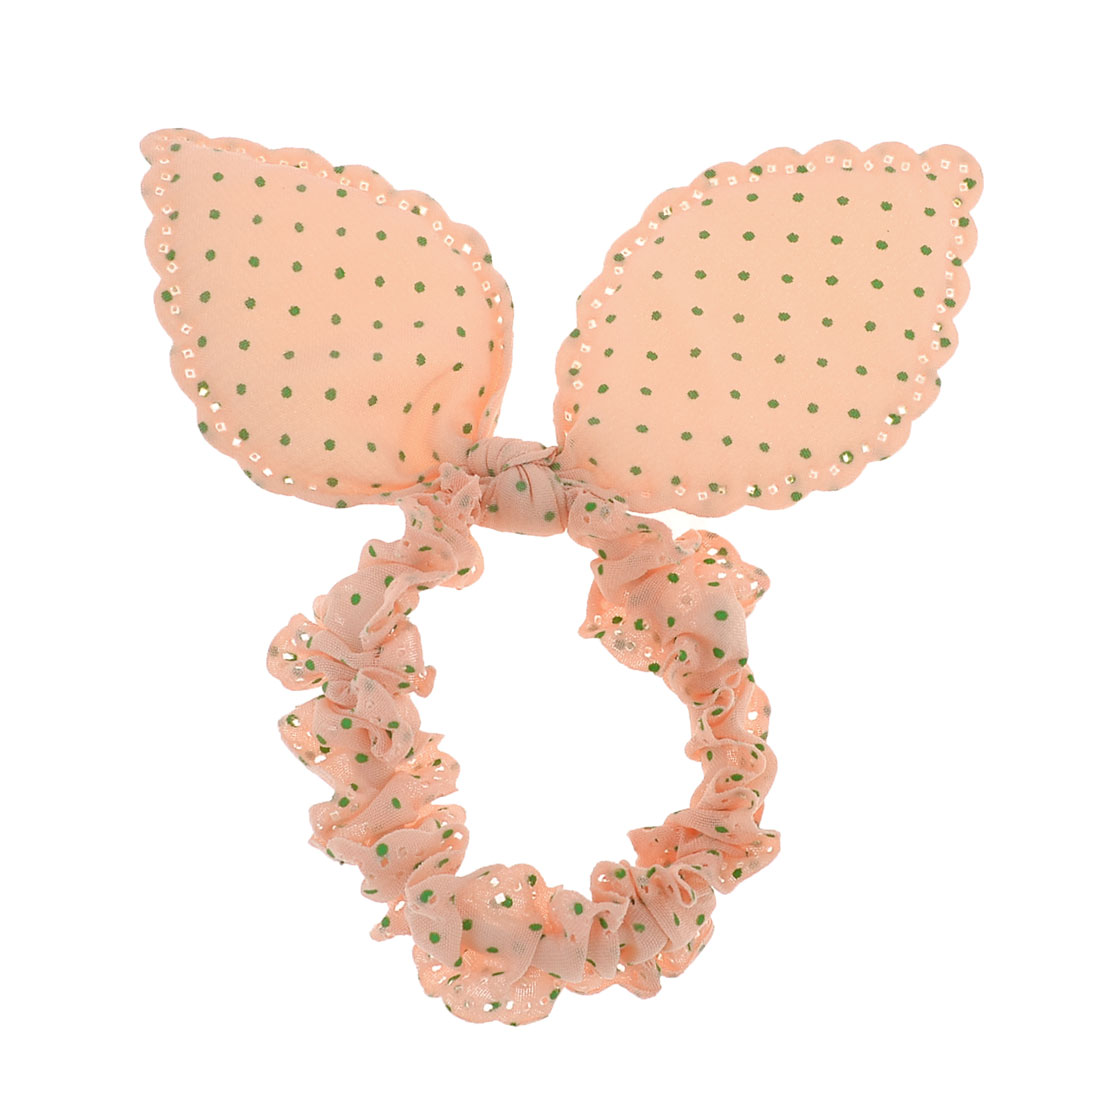 Green Dots Print Rabbit Ear Stretch Hair Tie Ponytail Holder Apricot for Girls